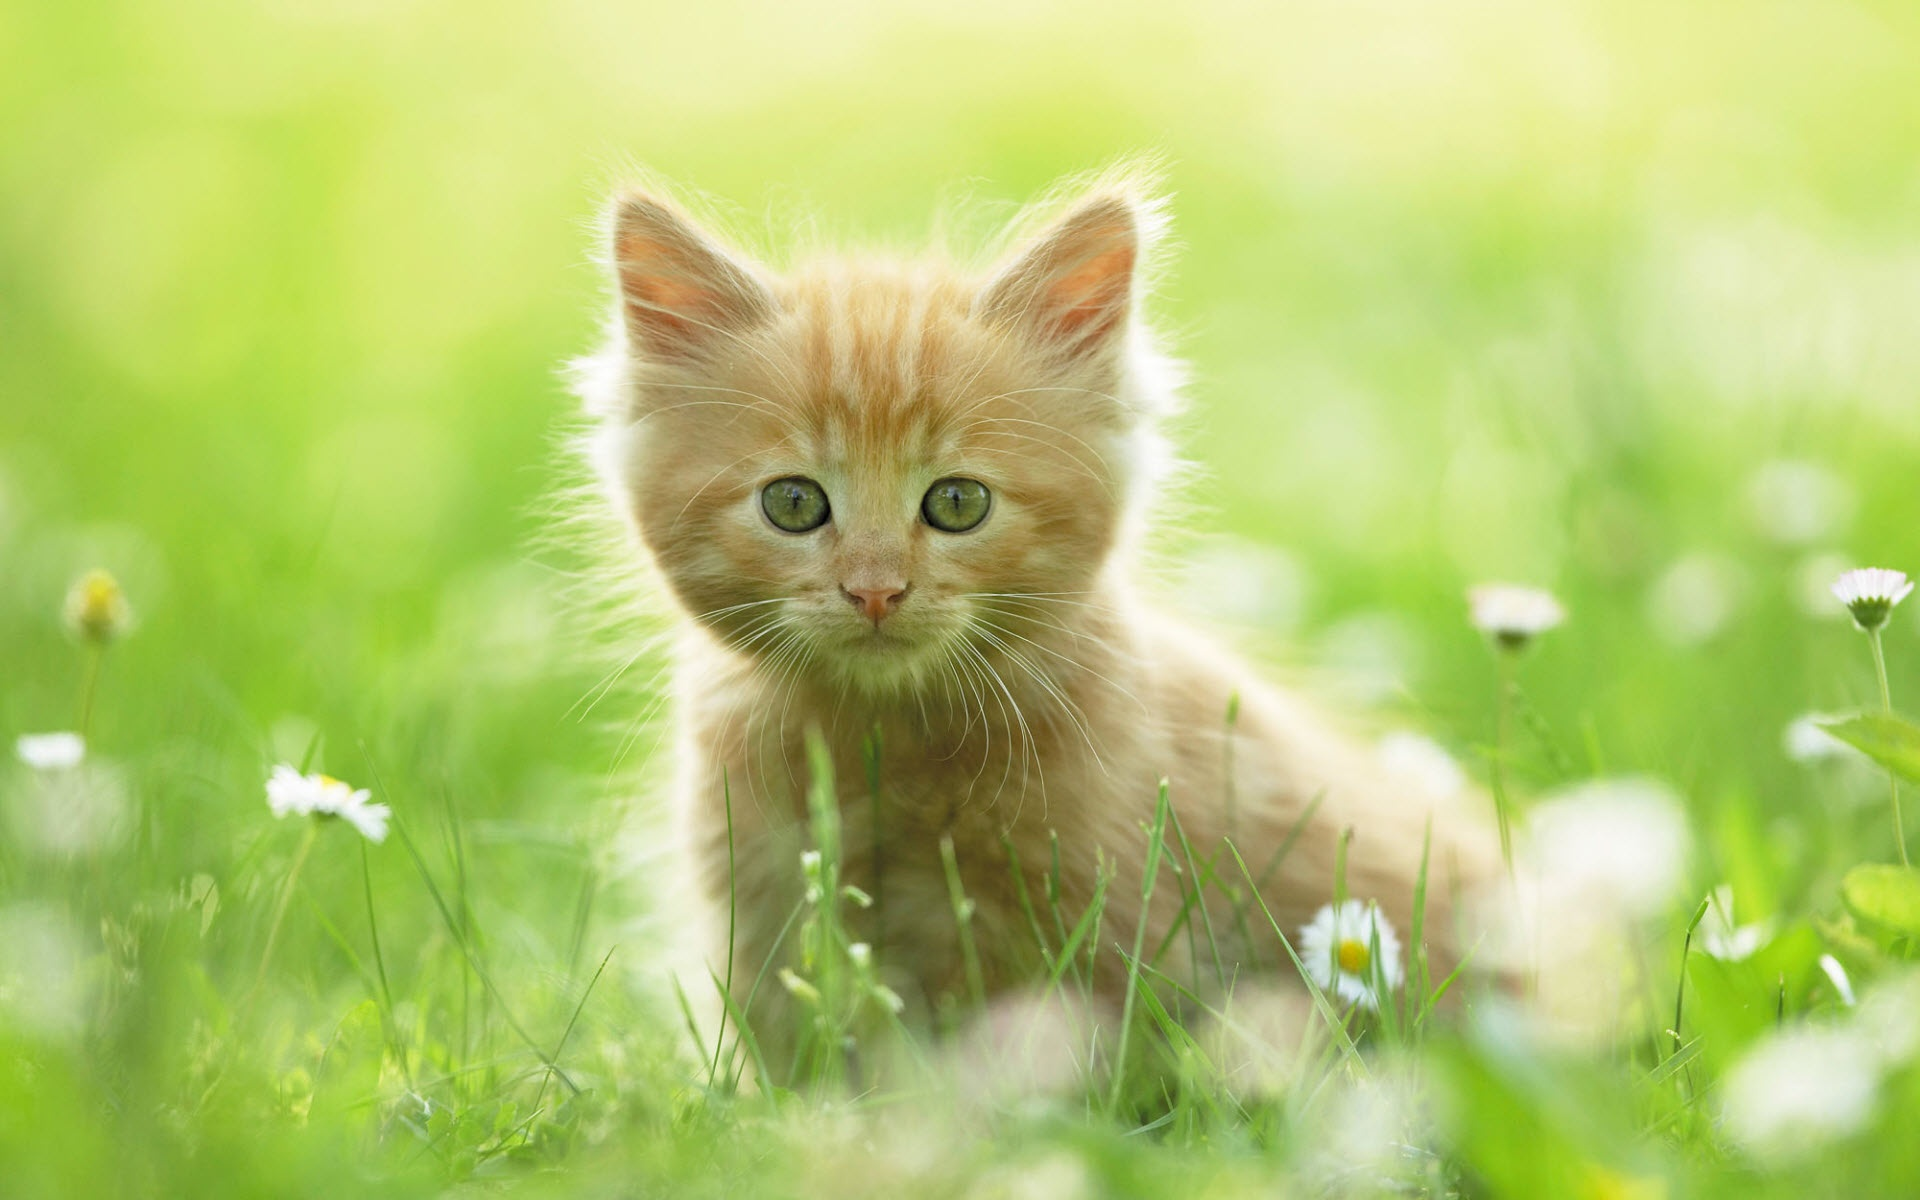 cute animal wallpaper wallpapers for free download about 3 668